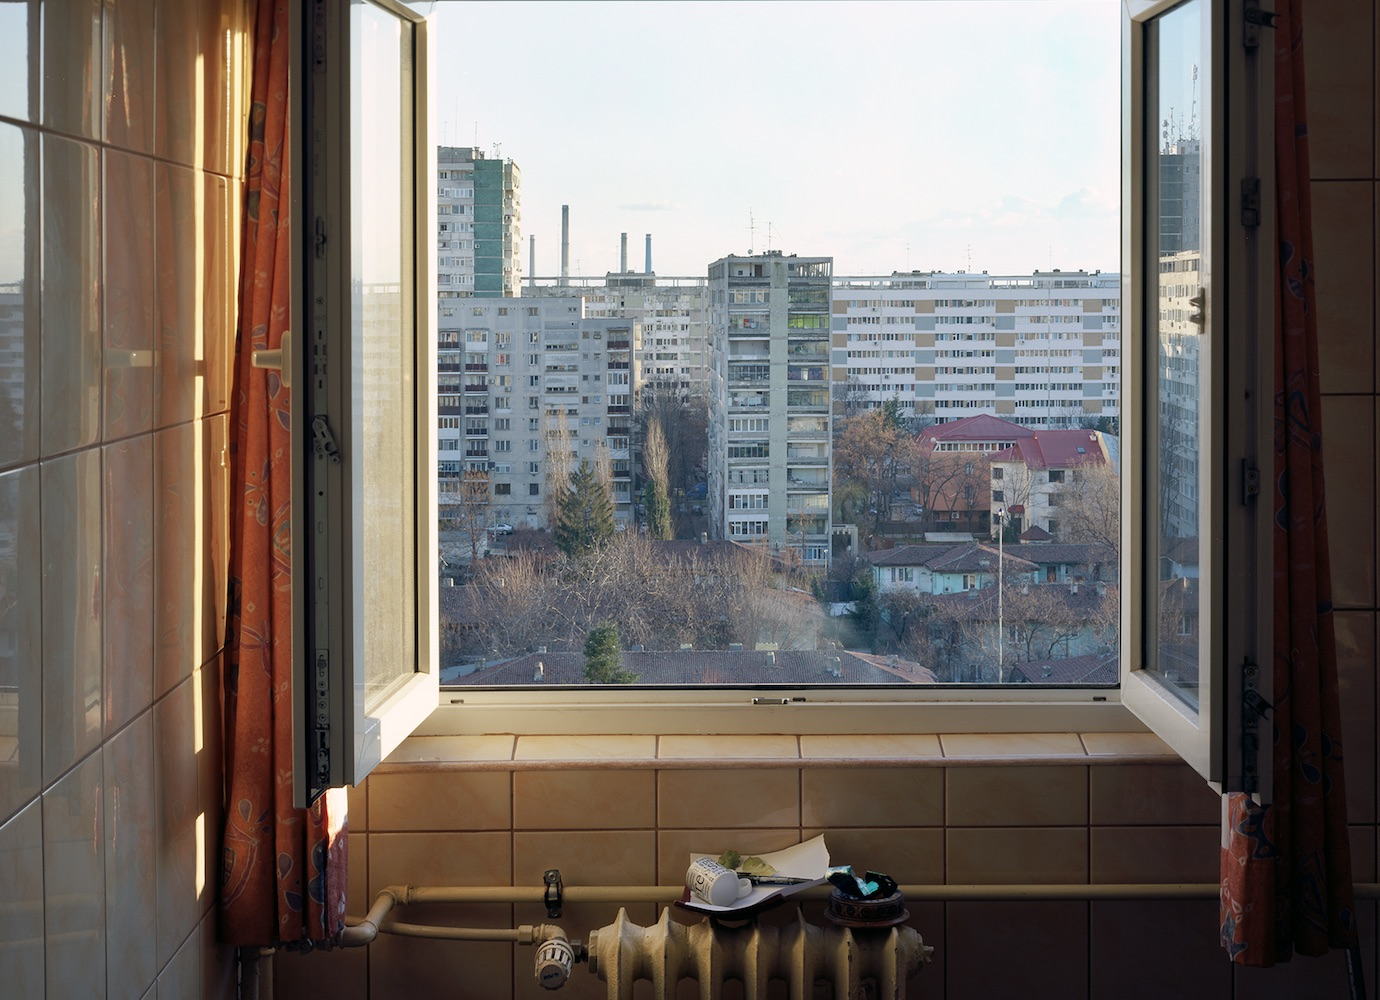 The view from my window: a photographer captures city life from our most private spaces